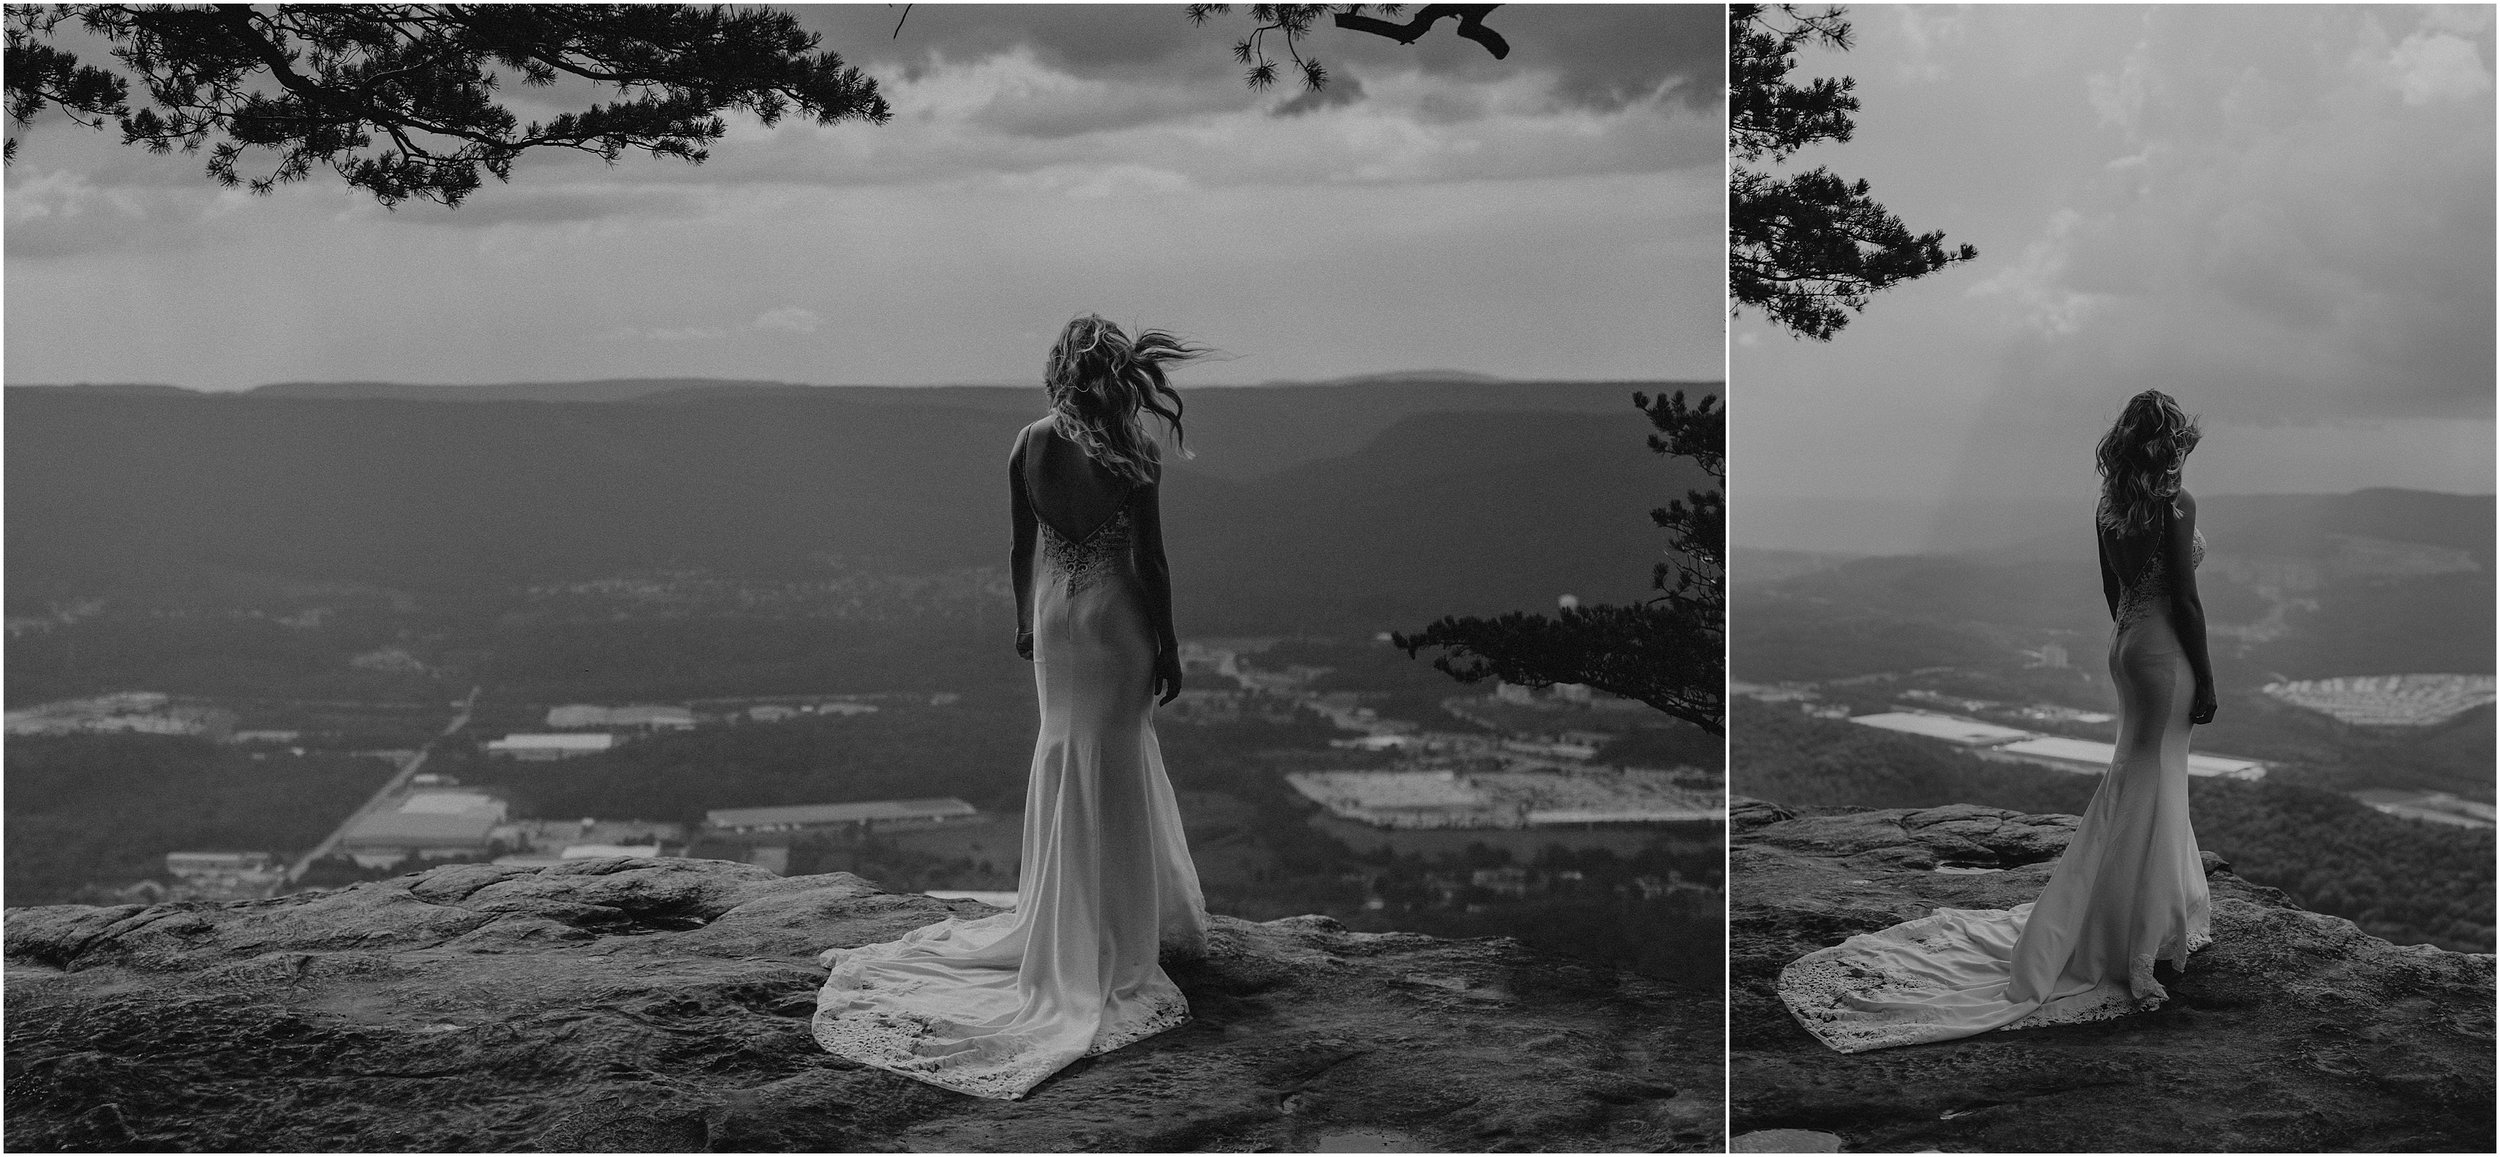 Dramatic black and white bride portraits before a summer storm atop a mountain